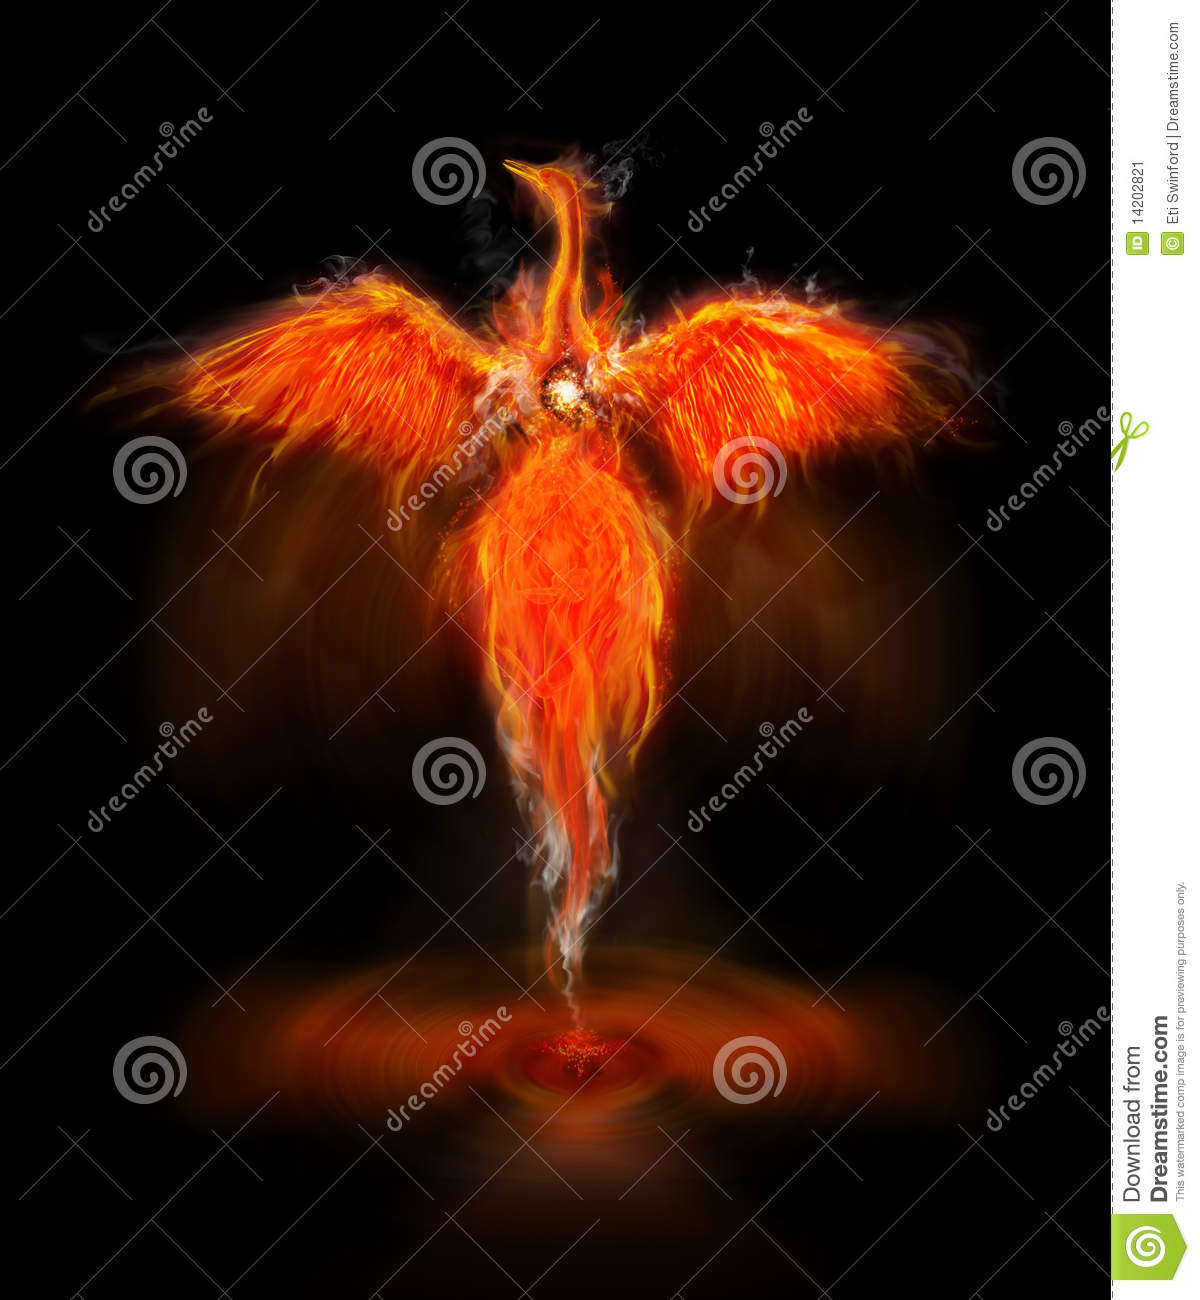 fiery phoenix bird with wings out stretched rising from a spiral ...